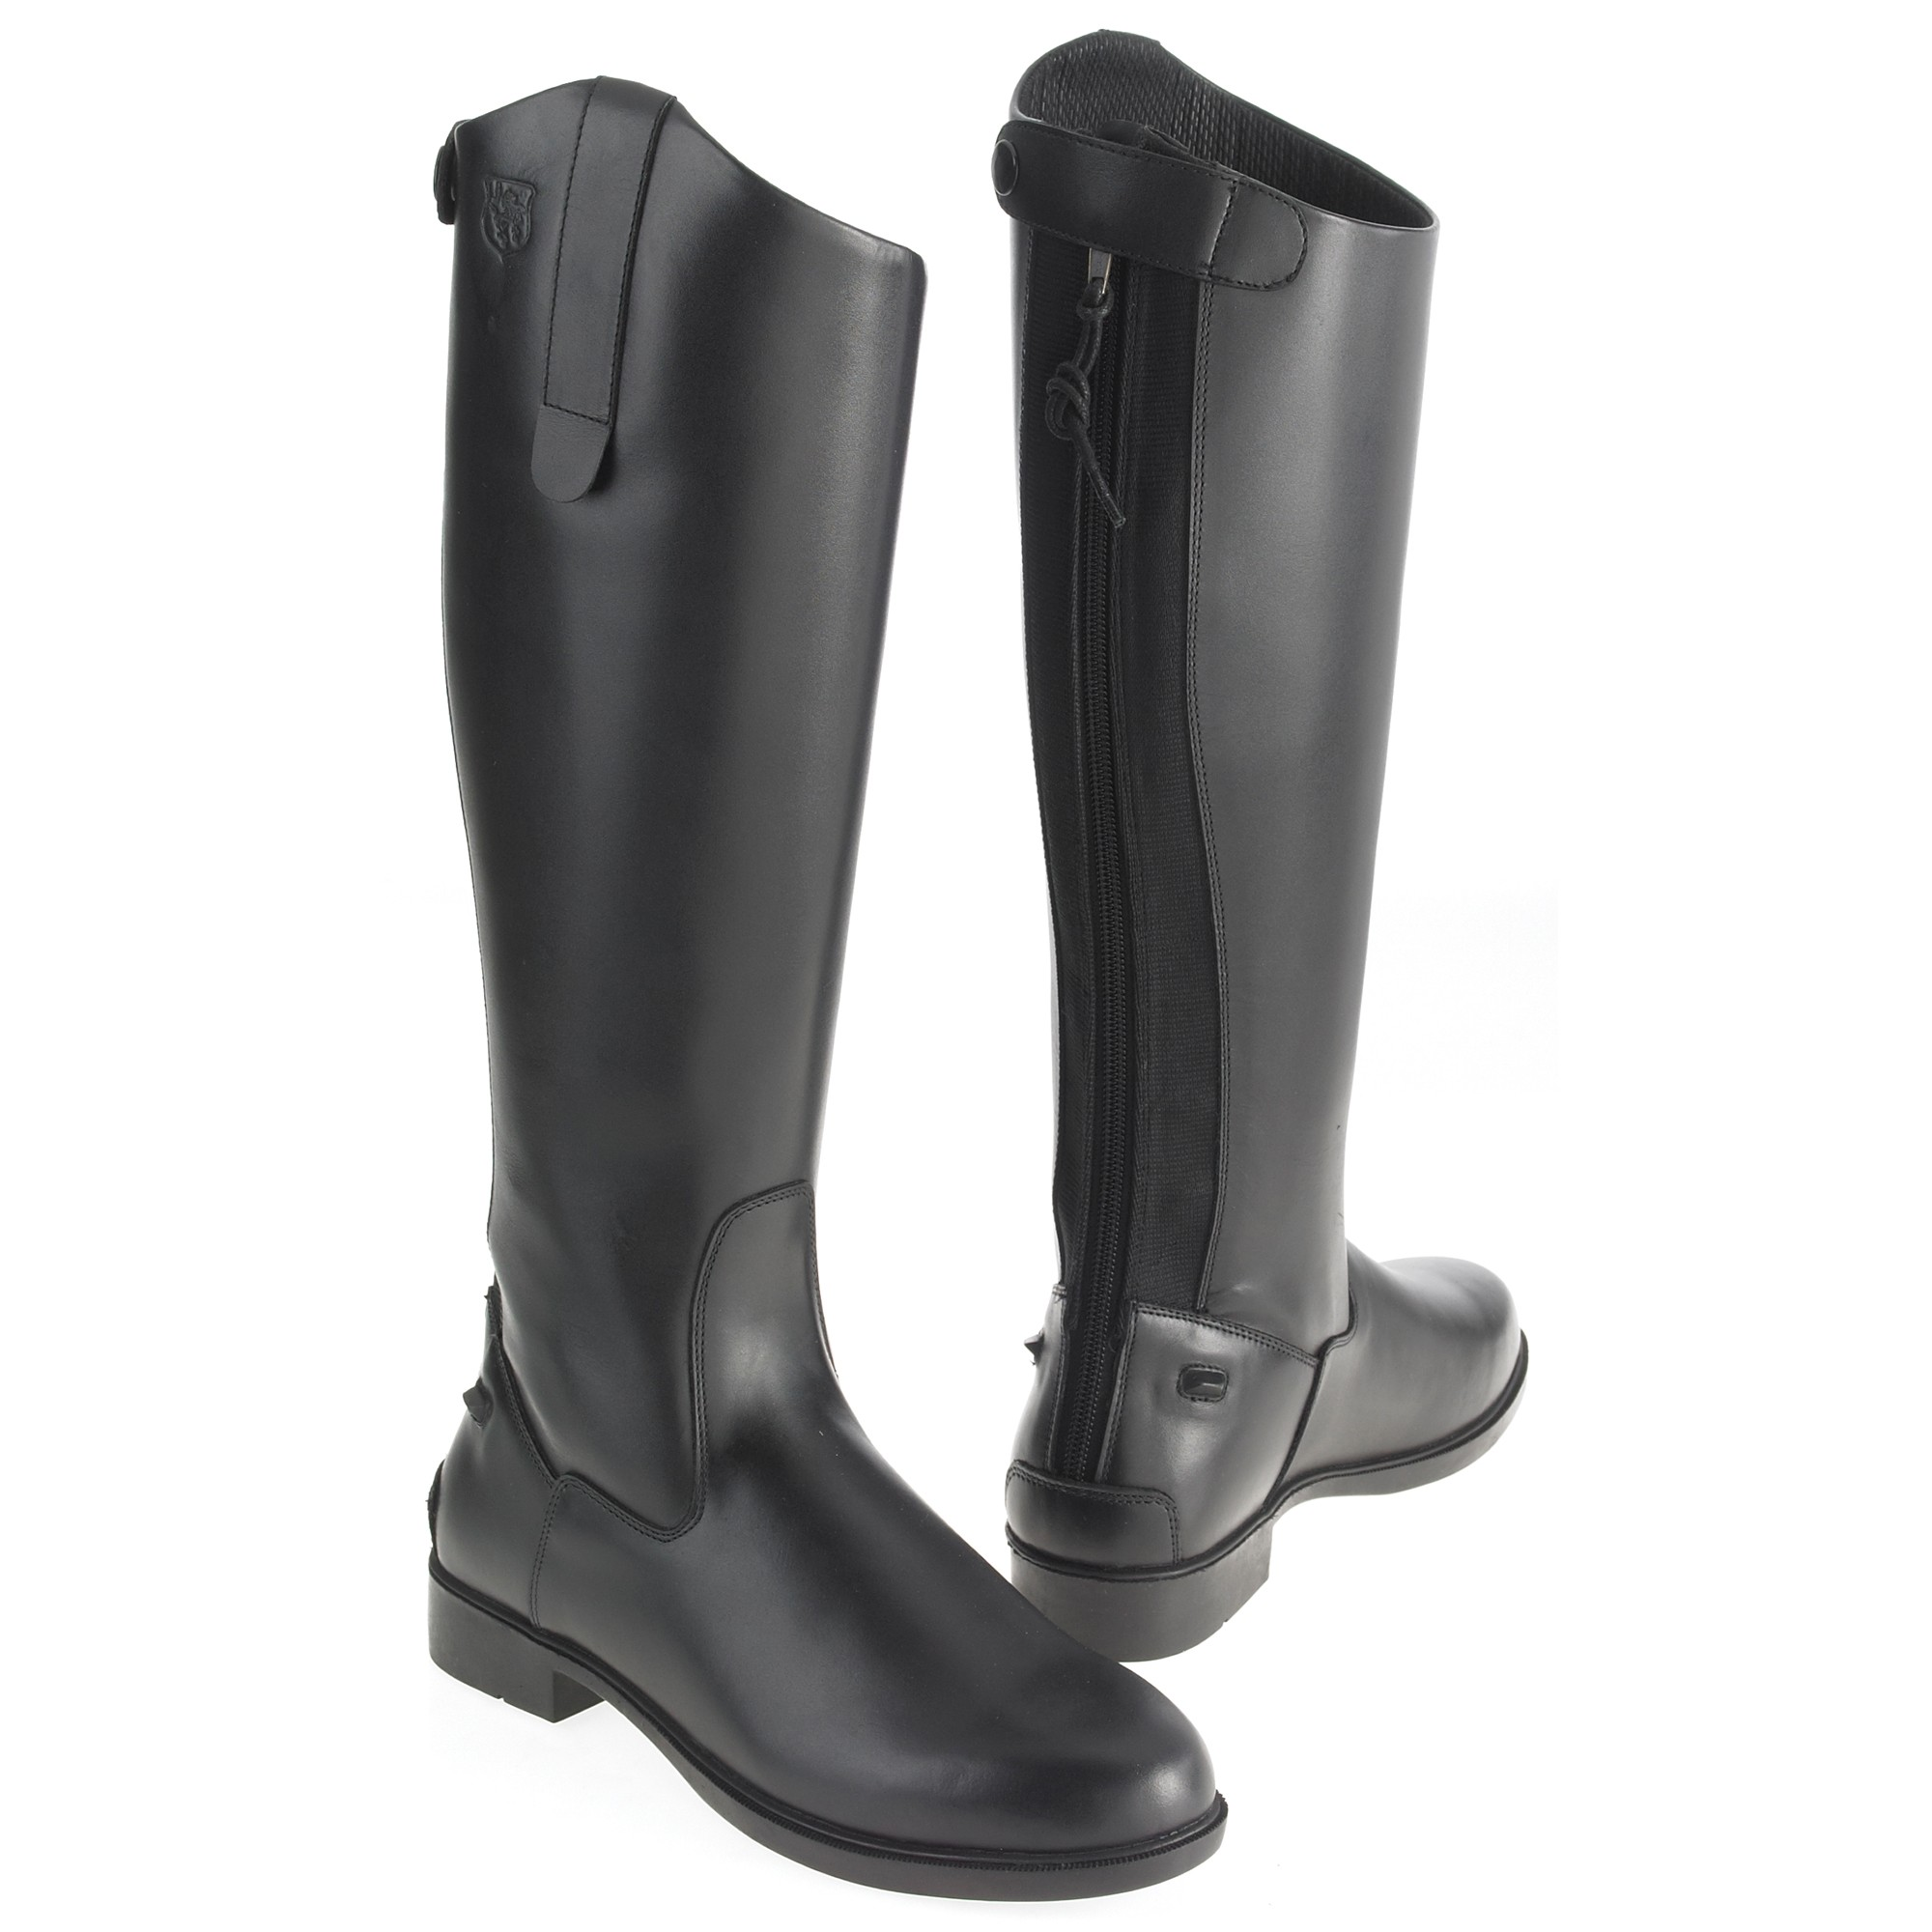 Just Toggs Classic Tall Riding Boot - Equine Mania